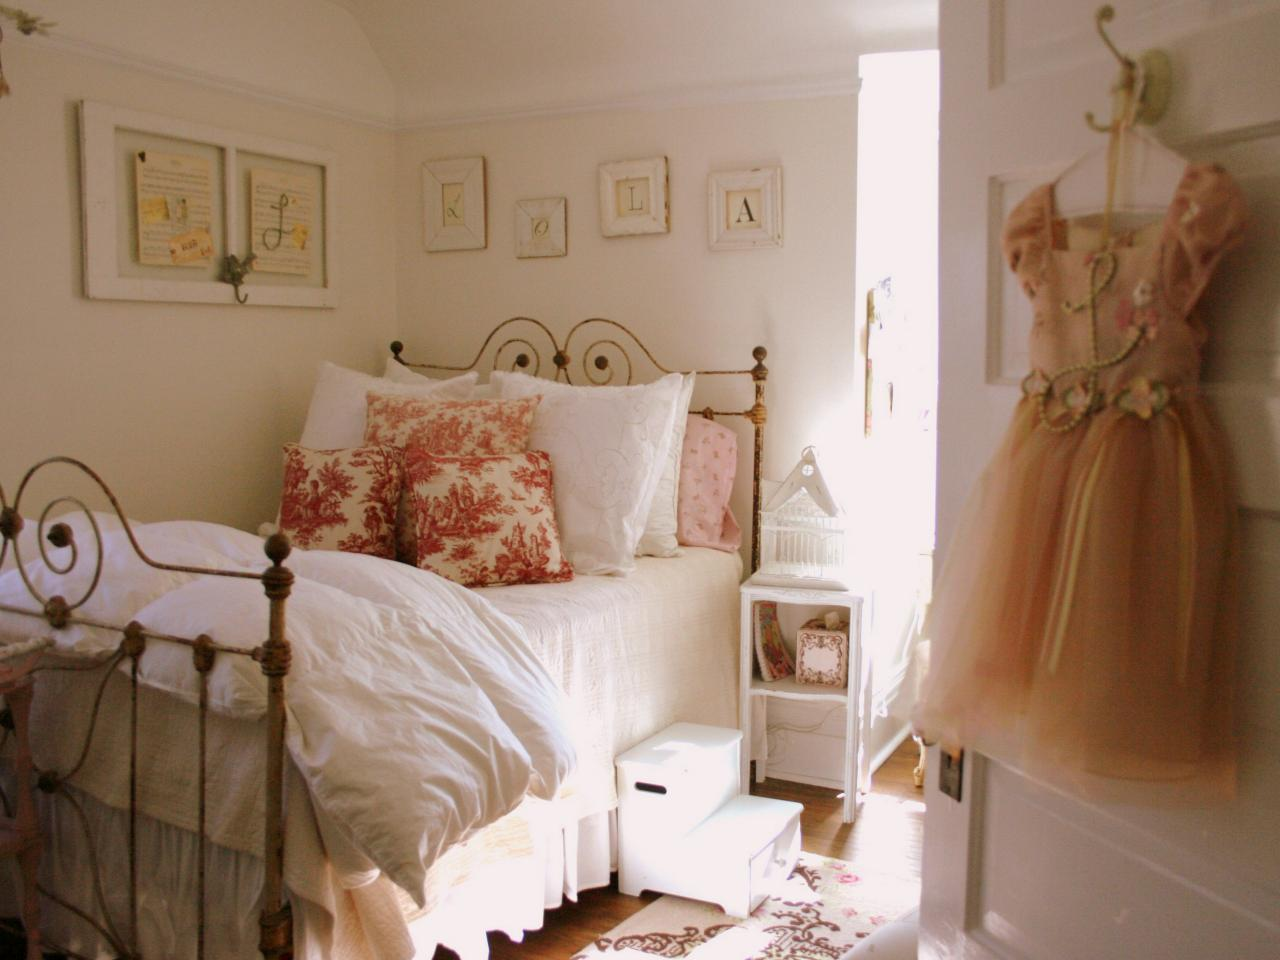 romantic-valentines-themed-small-girly-bedroom-decorating-ideas-with-comfortable-full-size-wroughtiron-bedstead-include-pure-white-bedding-sheet-plus-pink-flower-patterned-soft-foam-pillows-moreover-b